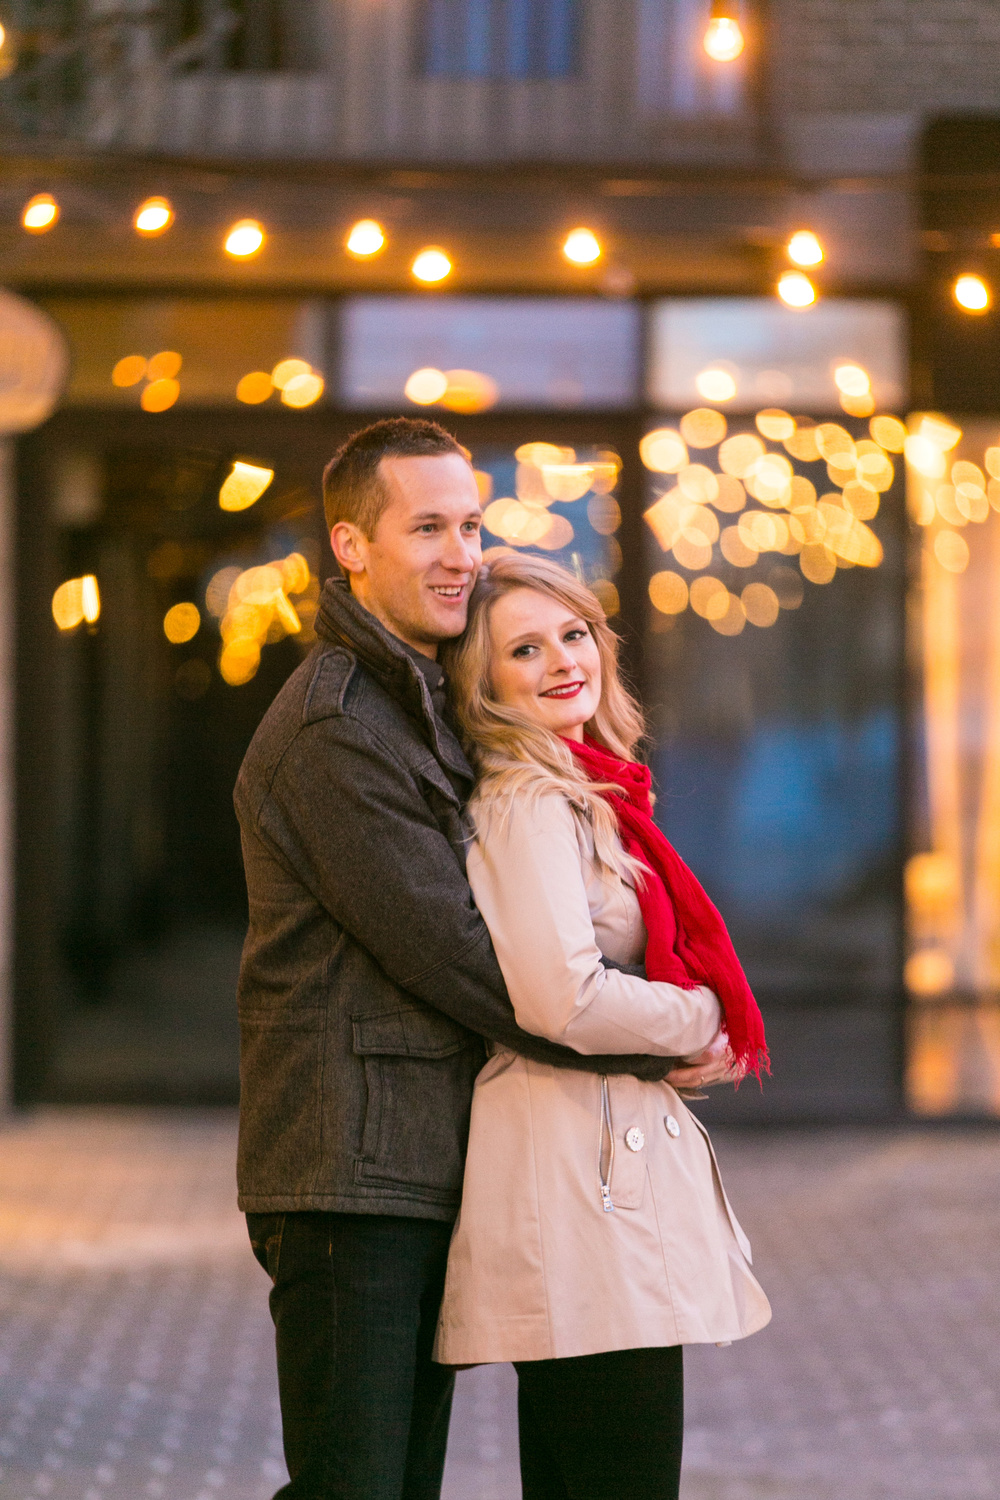 821-halifax-engagement-photography.jpg